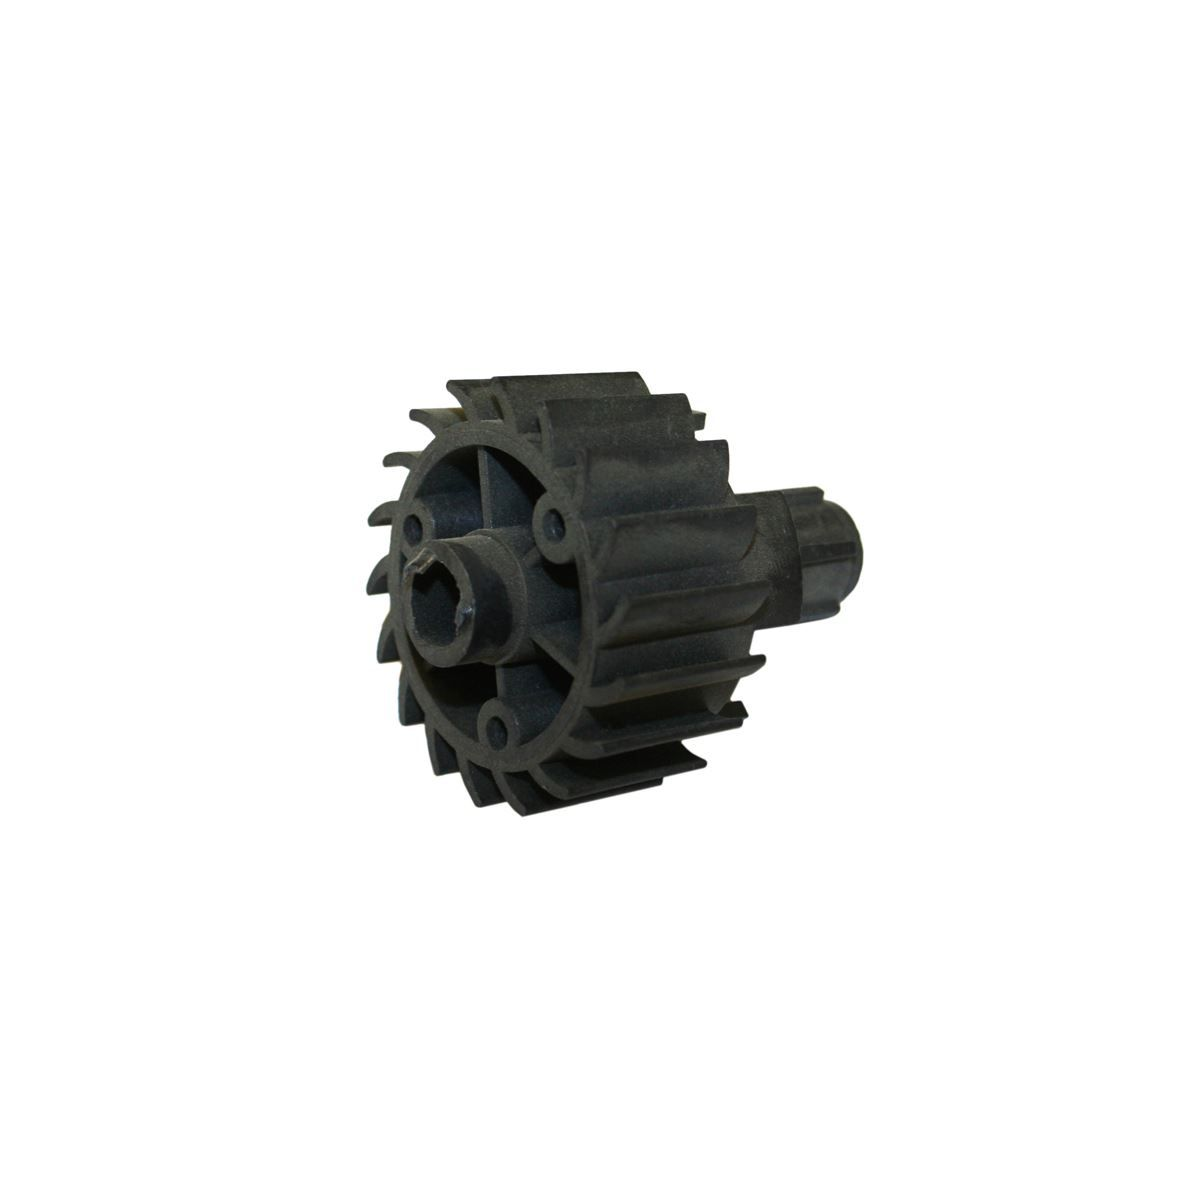 Tacx Spare - Cone T1601/T1611: